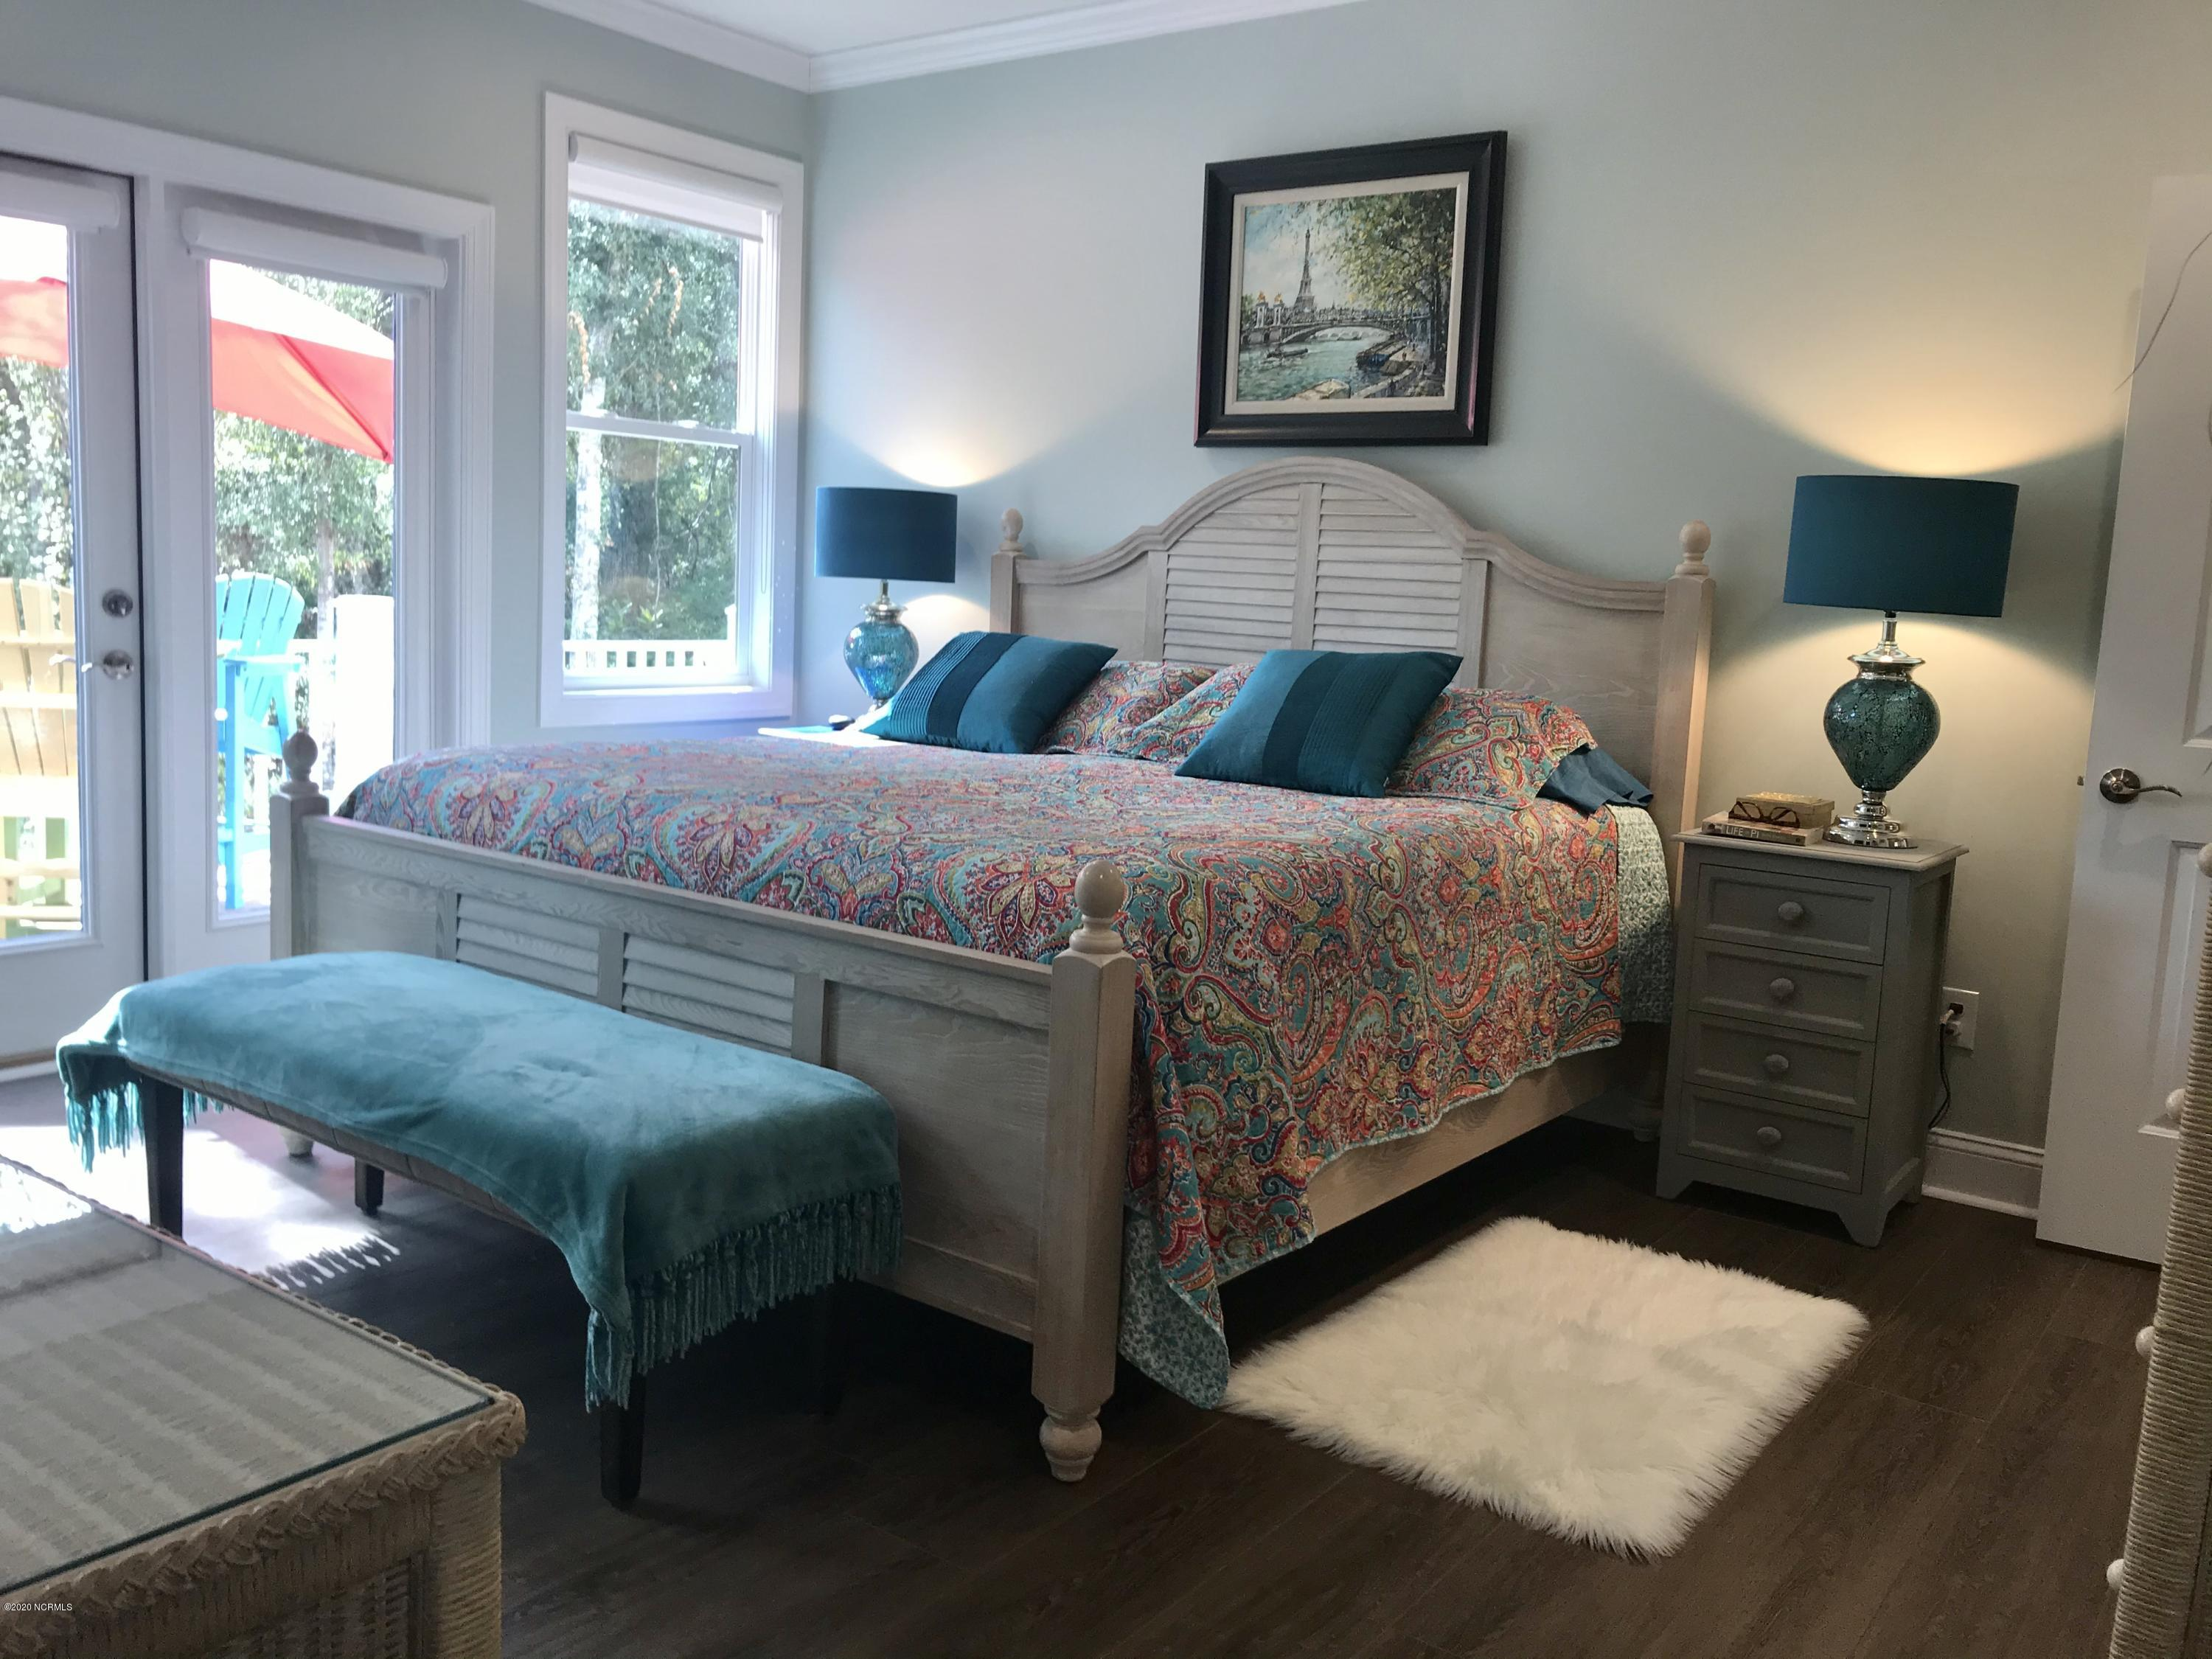 102 Evergreen Lane, Pine Knoll Shores, North Carolina 28512, 3 Bedrooms Bedrooms, 5 Rooms Rooms,2 BathroomsBathrooms,Single family residence,For sale,Evergreen,100190218